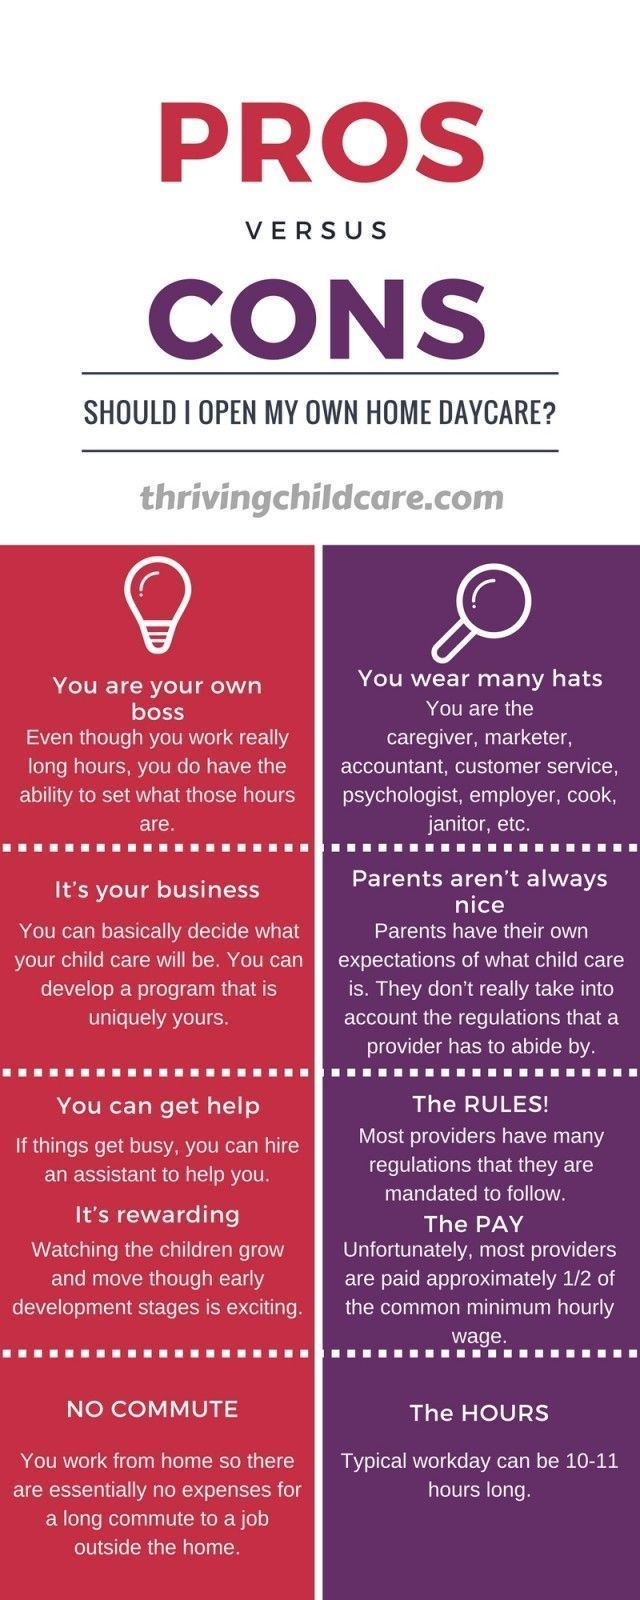 Before you know how to open a home daycare you might want to know what it's like to run a childcare. Here are 5 pros and the cons of operating a daycare. #howtorunadaycare #openingadaycare